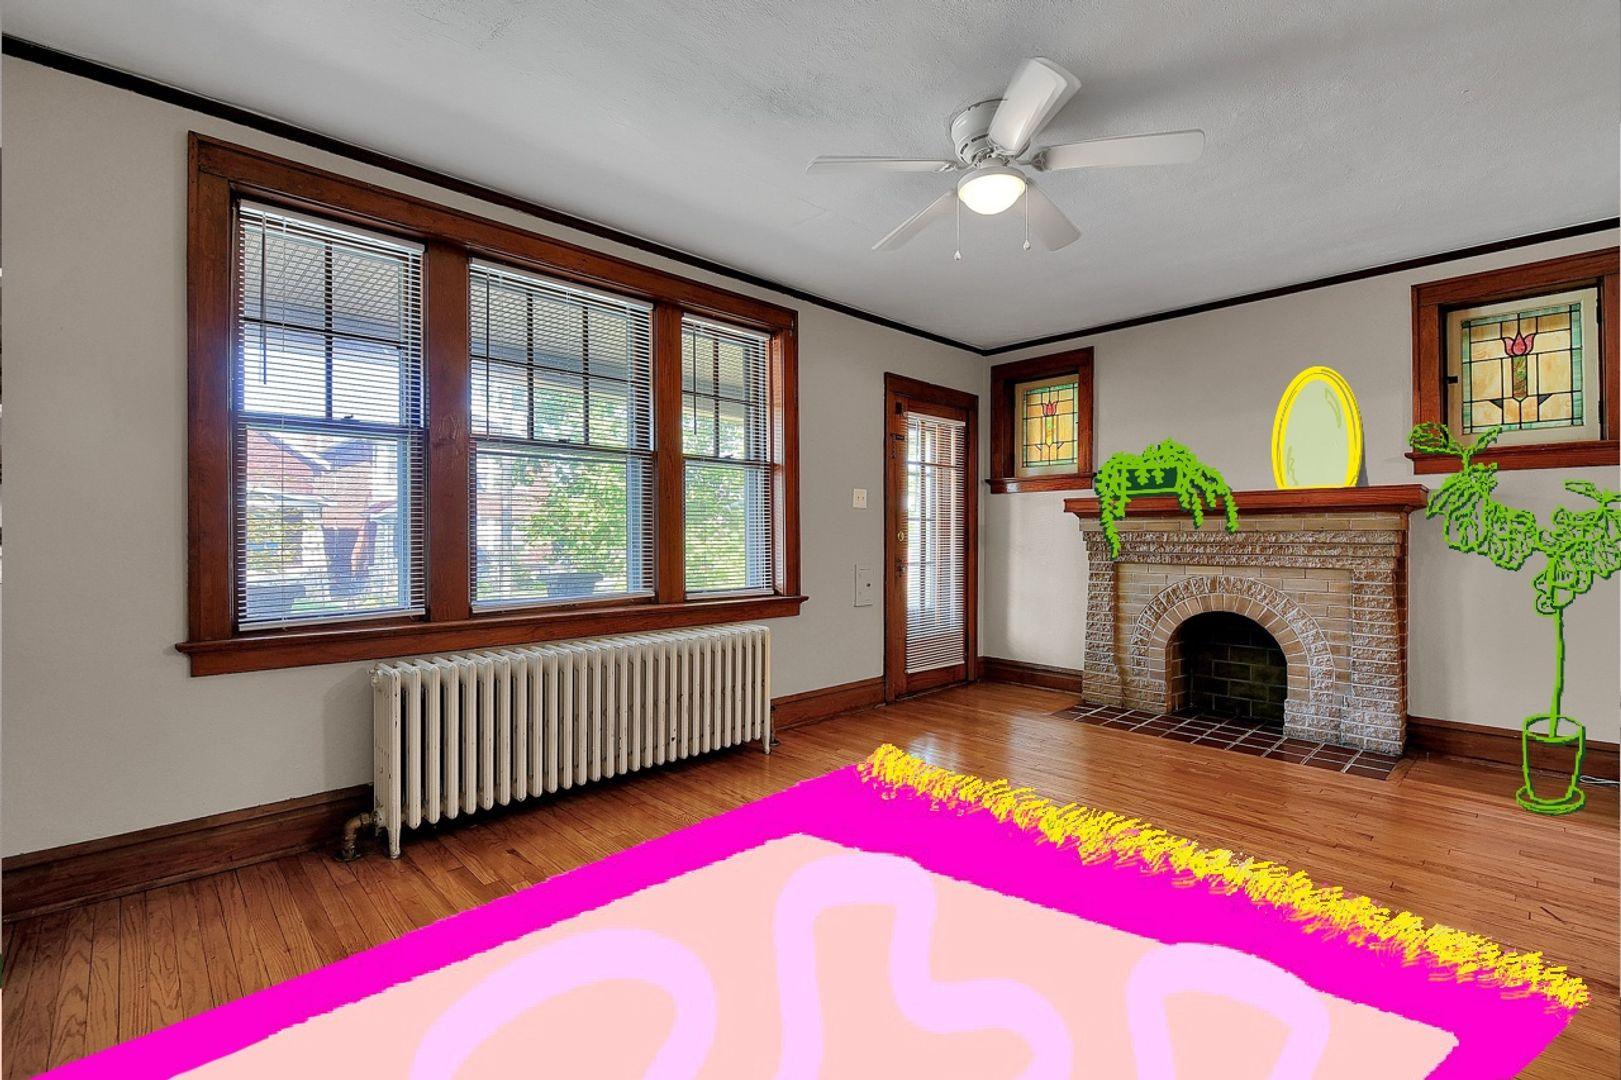 living room with fireplace, radiators, faux fireplace and illustration